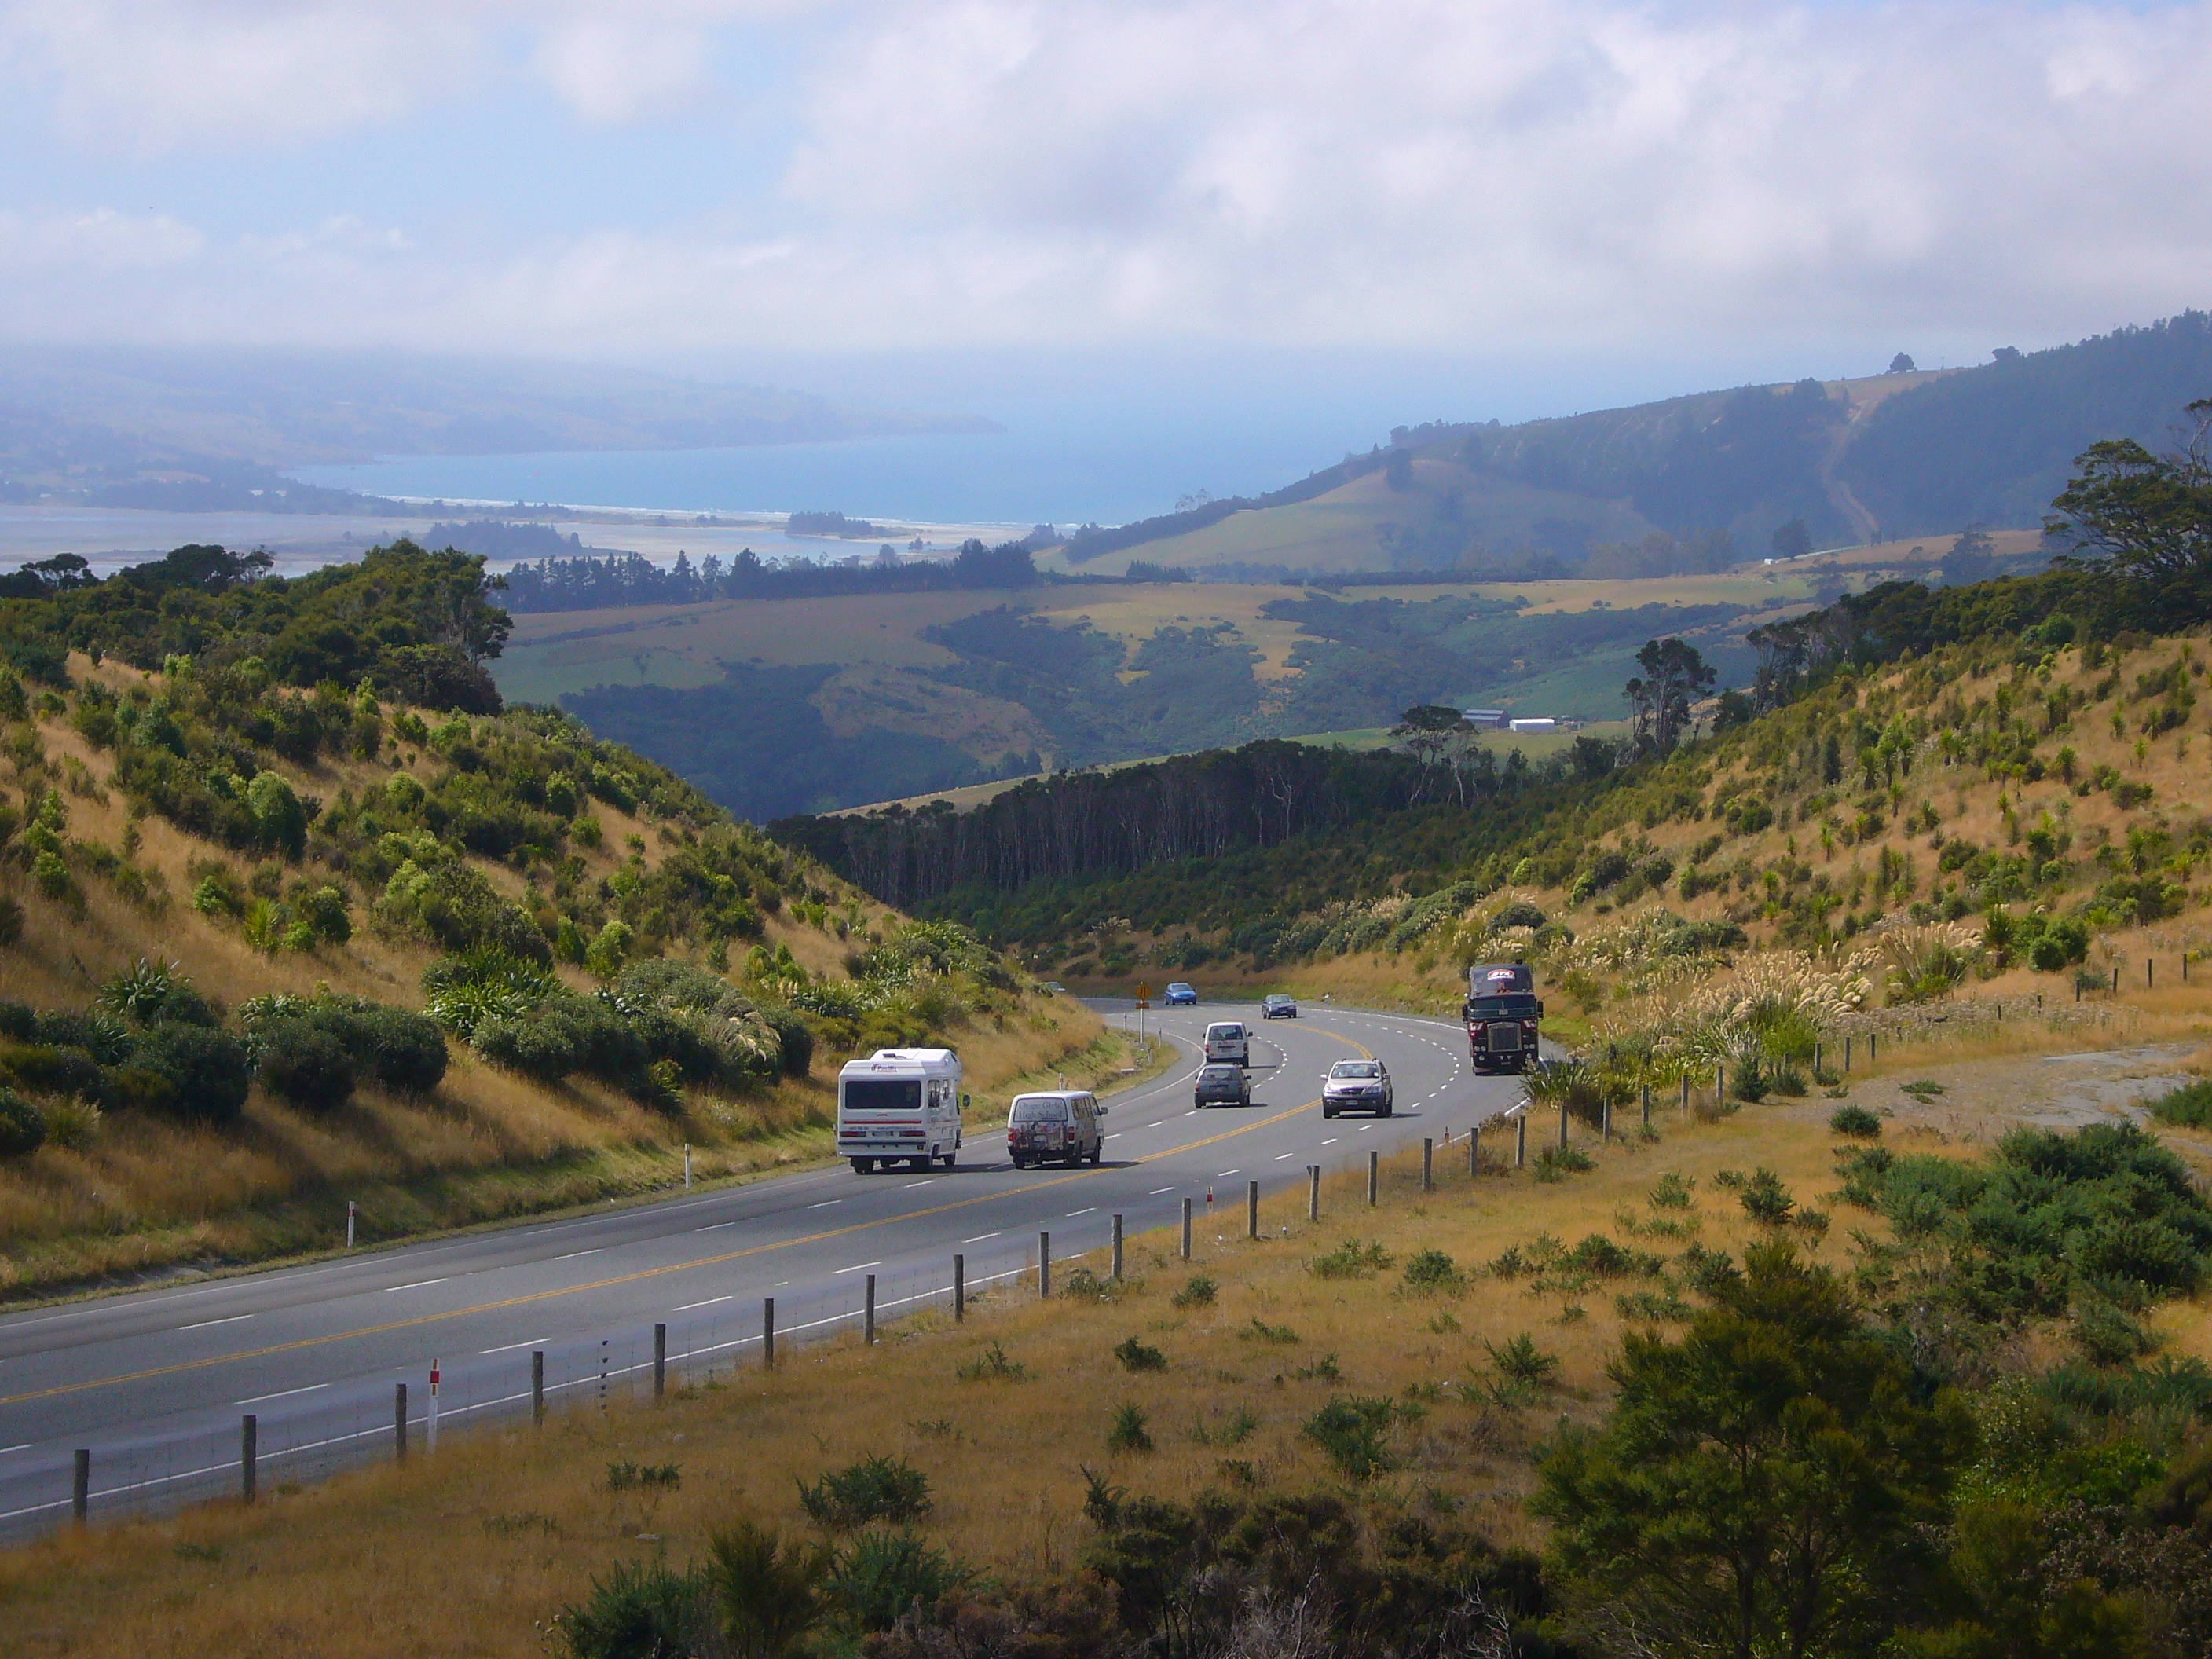 Dunedin-Waitati Highway - Wikipedia